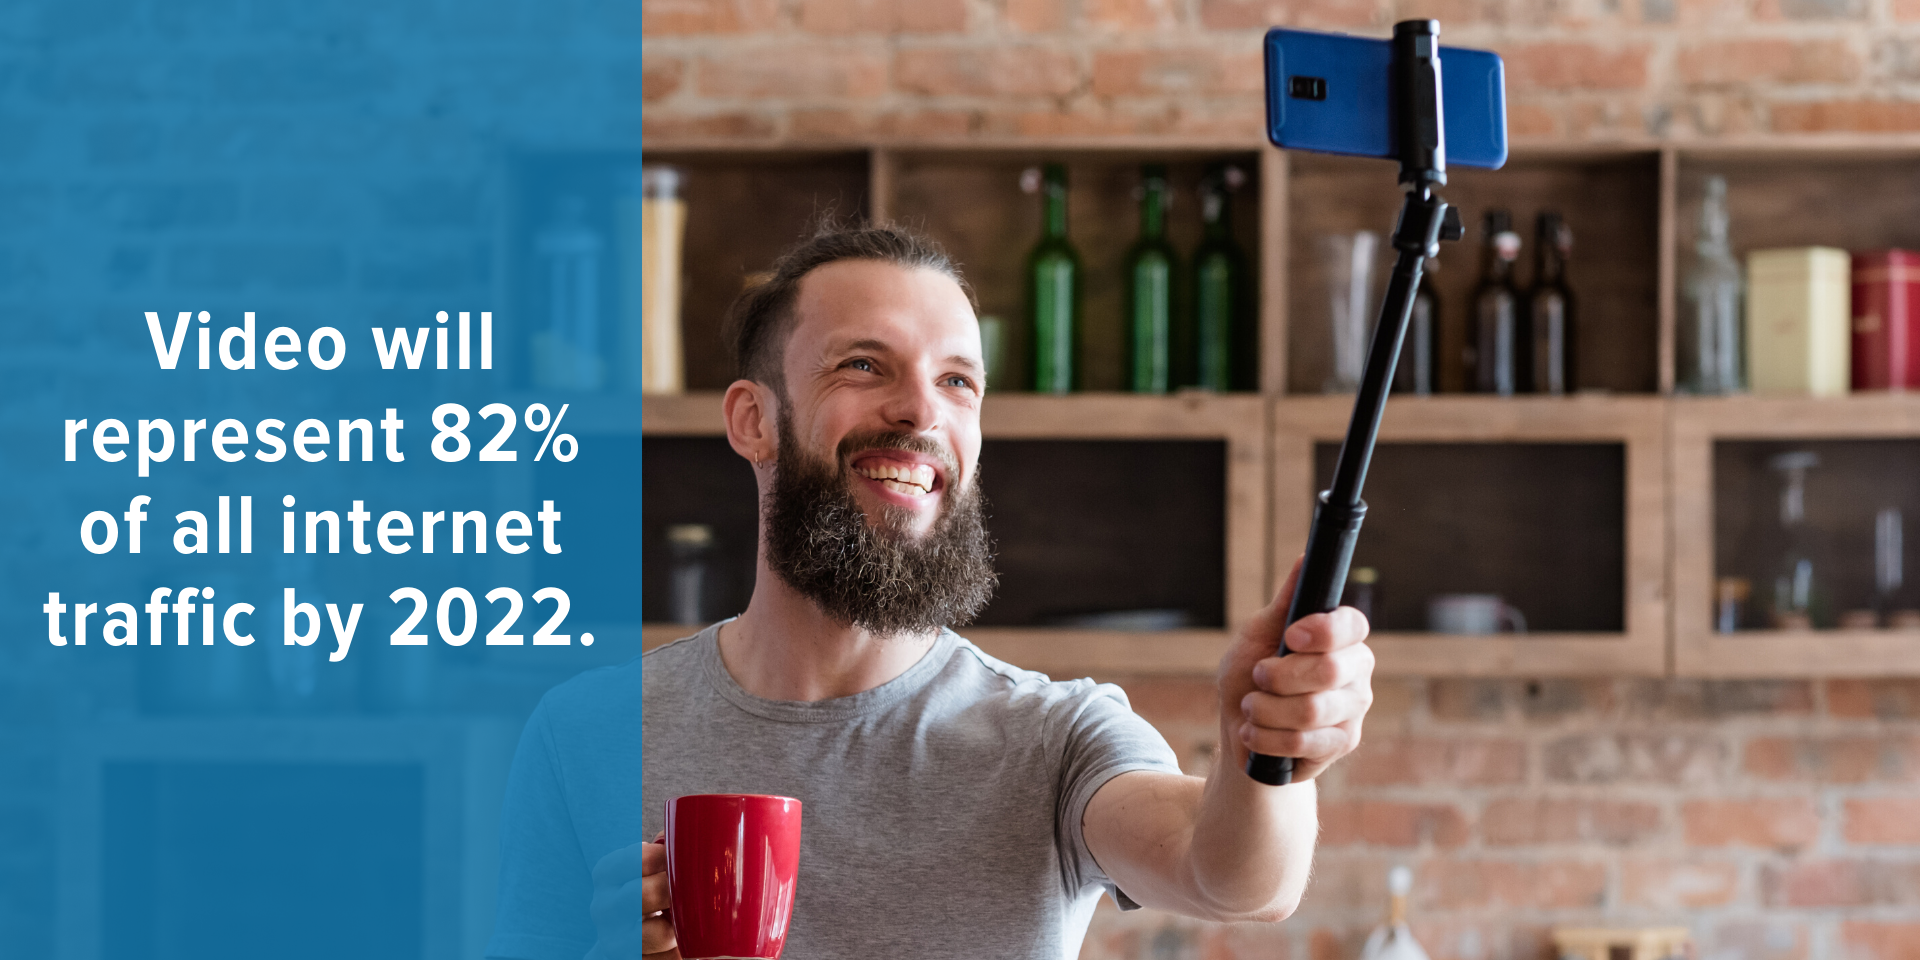 Man holding phone on a selfie stick taking a personal video in his kitchen to share as part of his marketing plan